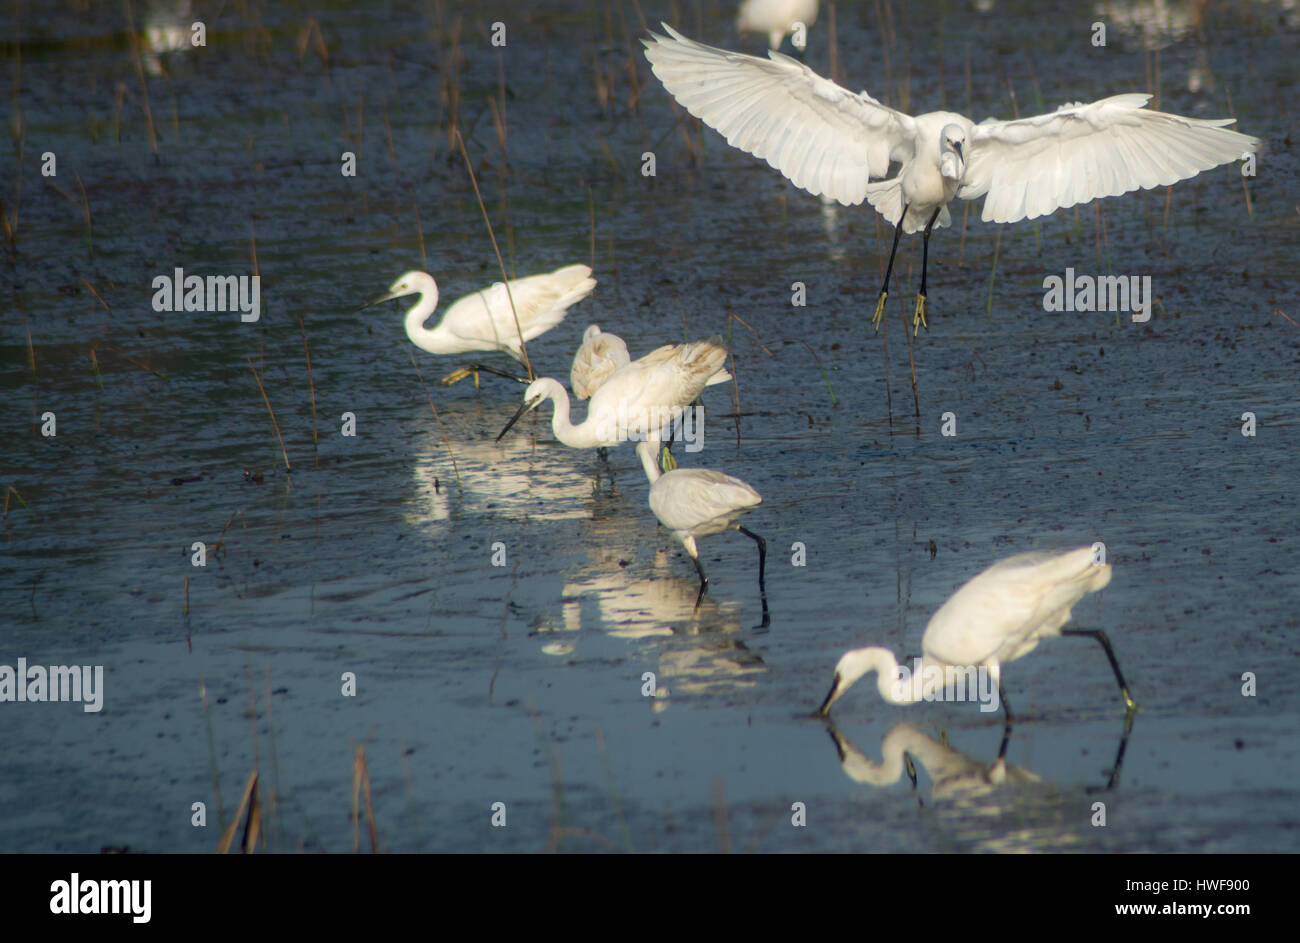 A Little Heron Bird Flying over other birds engaged in feeding themselves - Stock Image